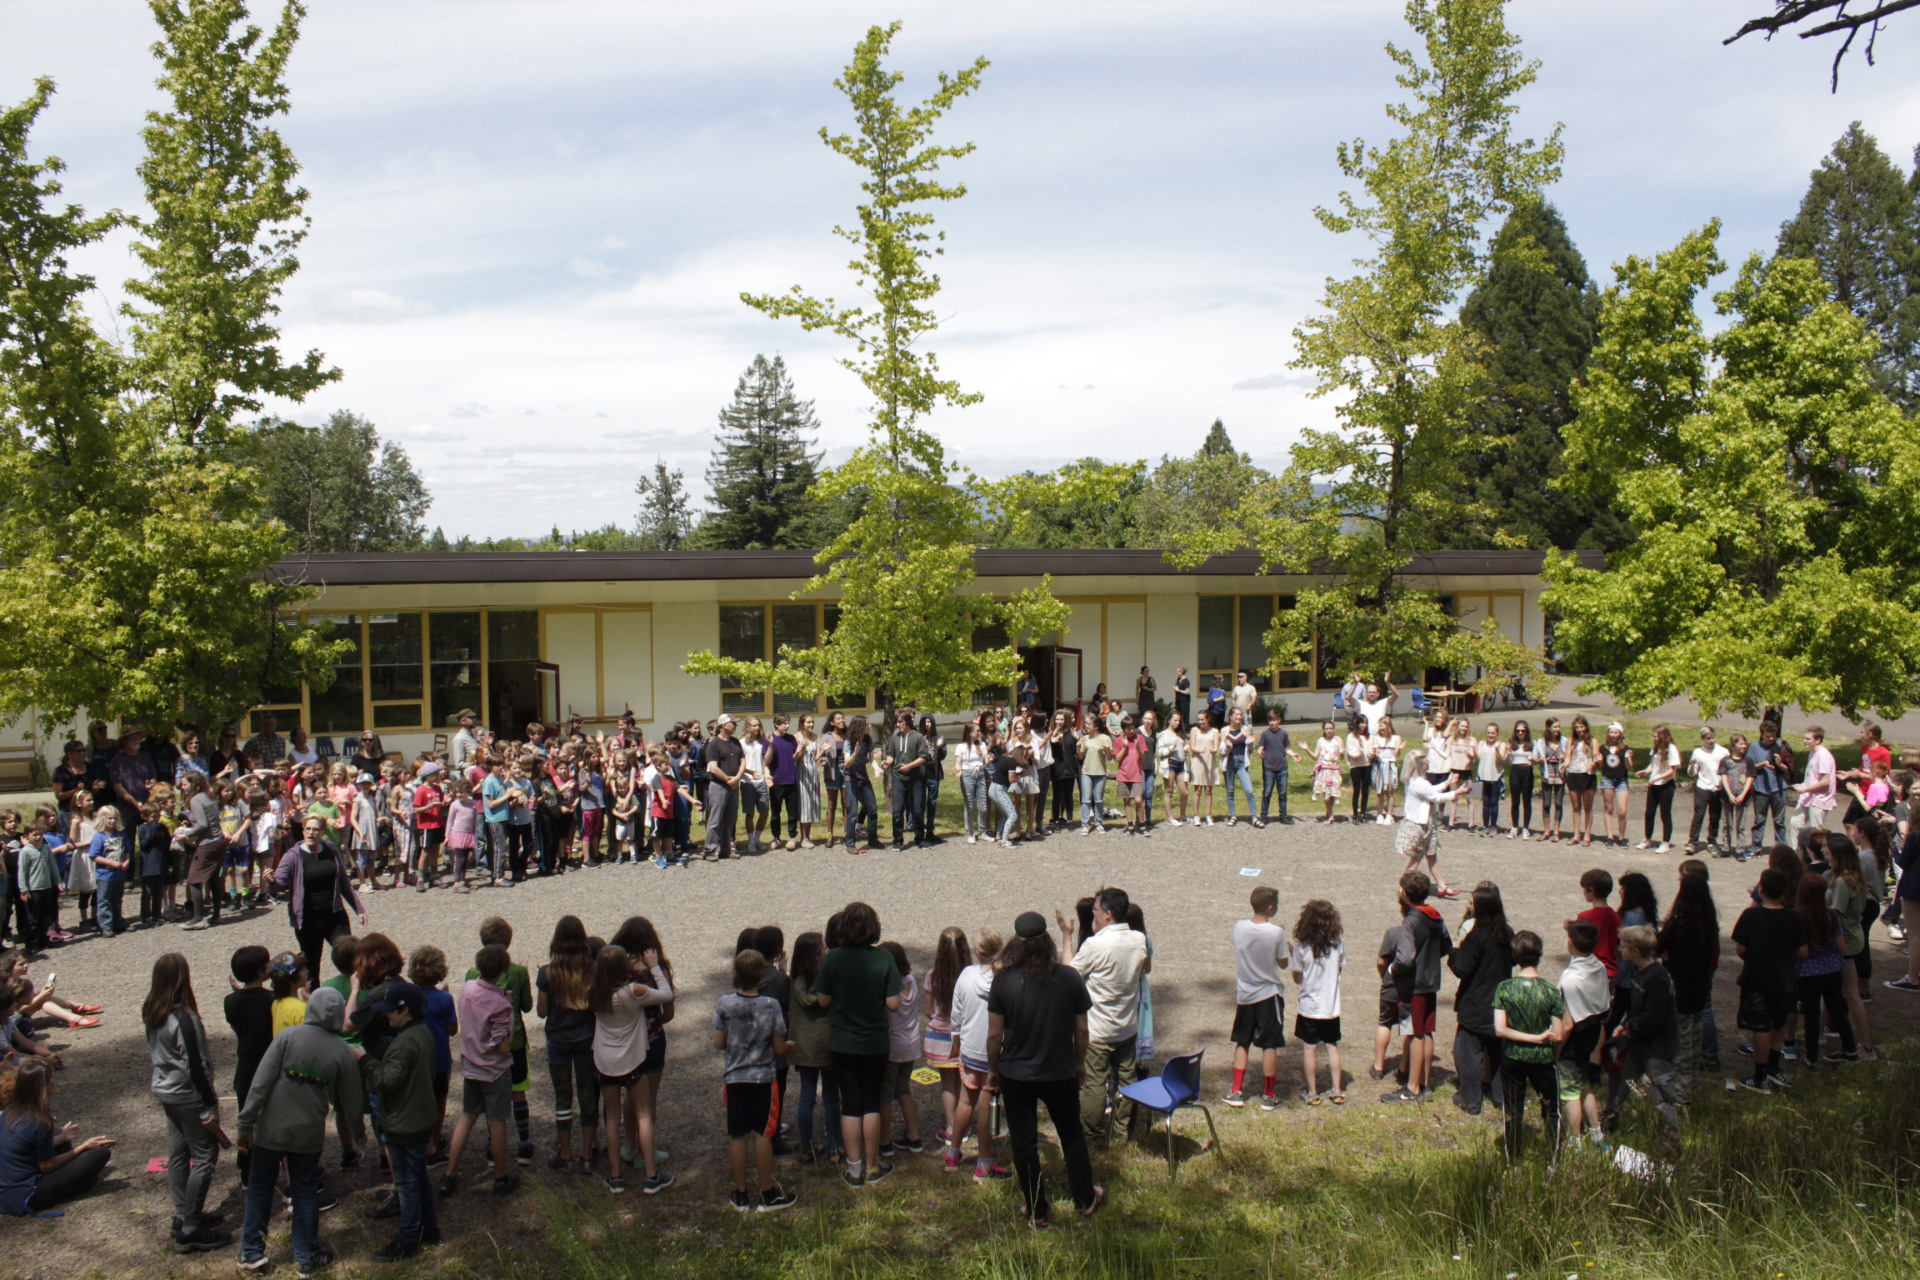 Students sing together for the last day of school [click image to see entire picture]